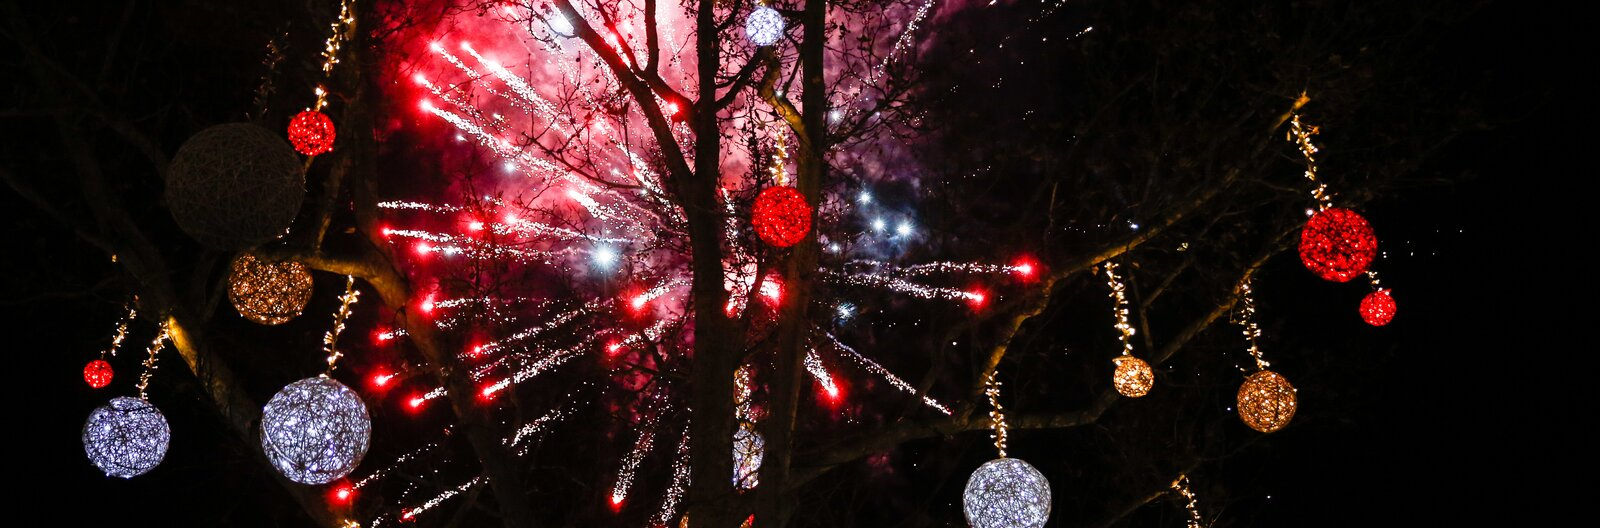 Food, music, hiking and cheer: 5 ways to celebrate NYE on- and offline